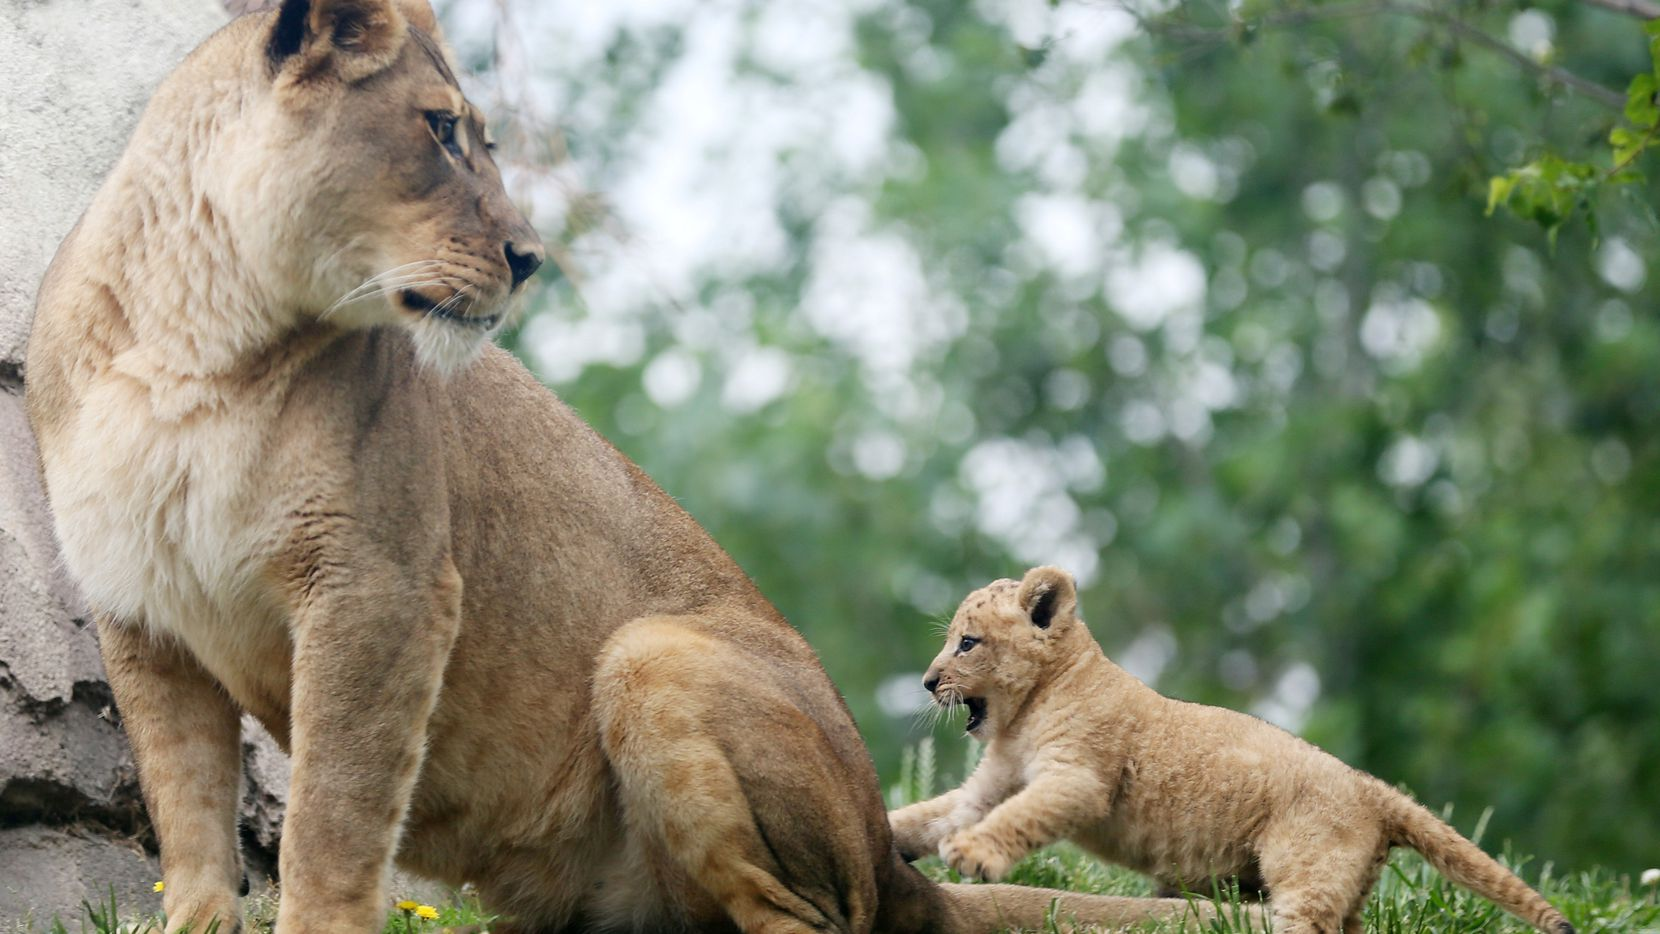 Bahati, a lion cub, plays with her aunt Jasiri while making her public debut at the Dallas Zoo in  May 2017. The cub was joined by her mother Lina and aunt Jasiri. Bahati is the first lion cub born at the zoo in 43 years. She was born weighting nearly 3 pounds on March 17 and she is now 13 pounds.